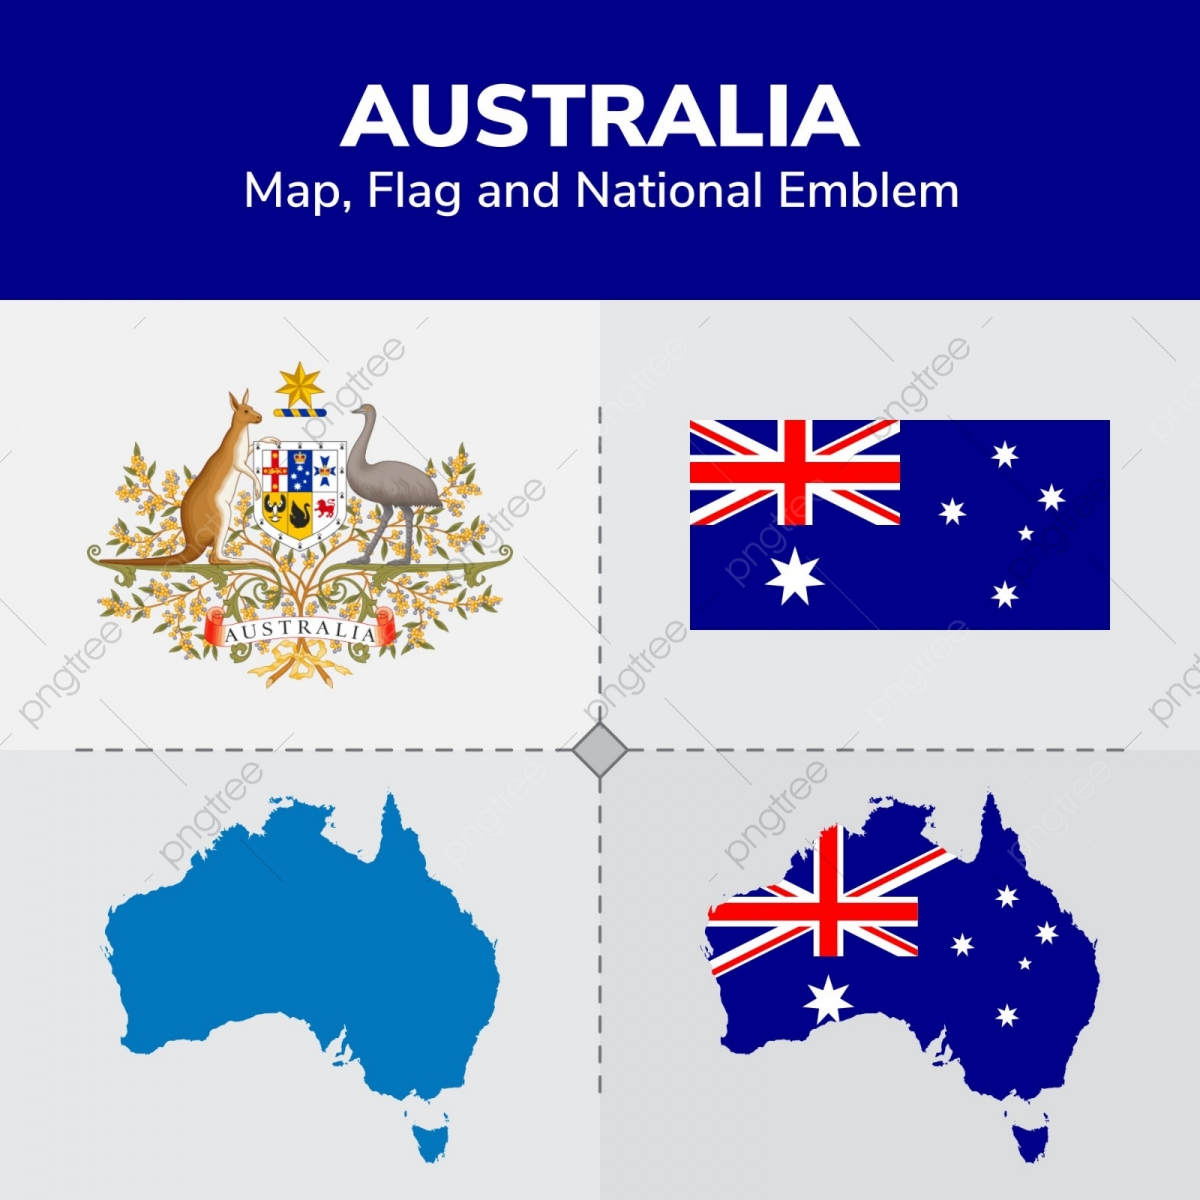 Australia Map And Flag.Australia Map Flag And National Emblem Continents Countries Map